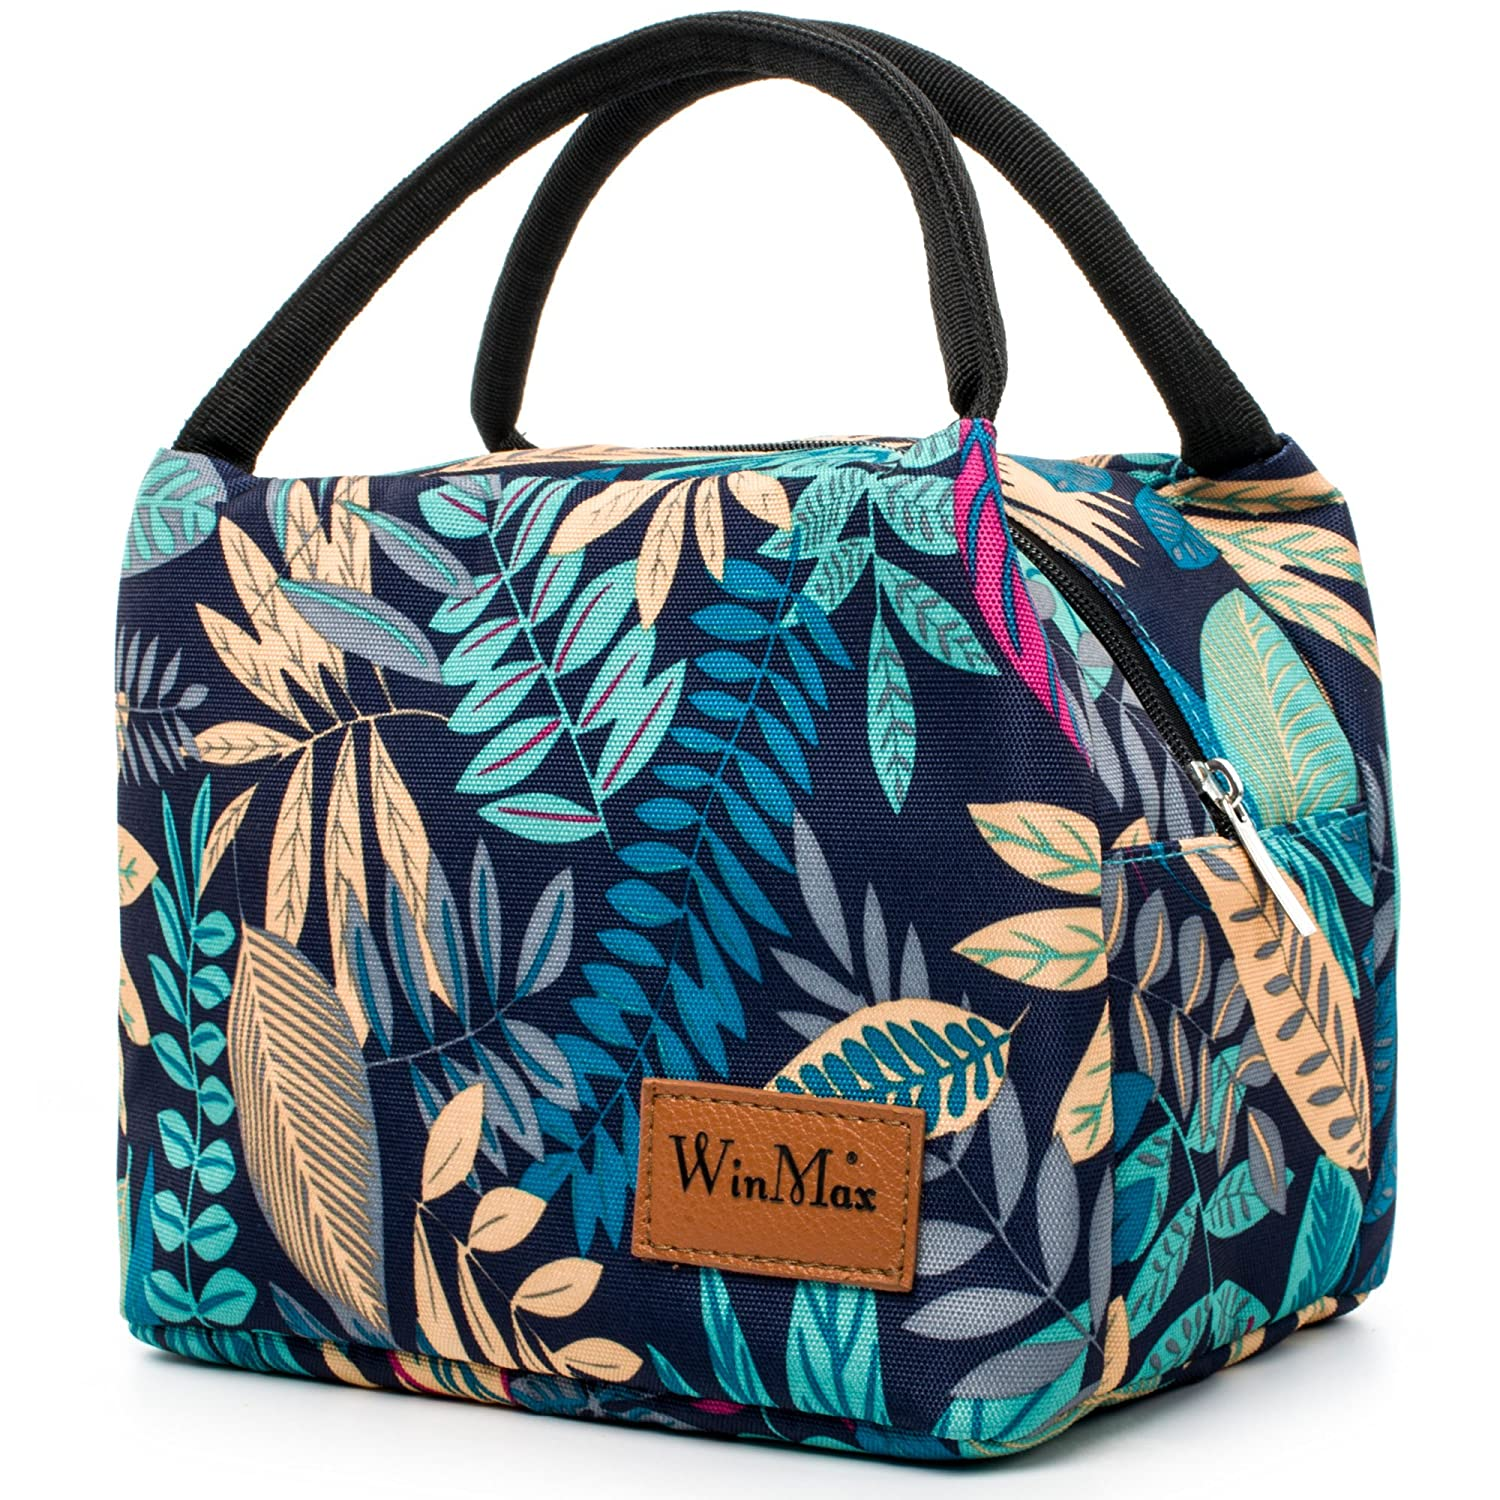 Lunch Bag Cute Lunch Box for Women Insulated Lunch Tote Bag for Kids  Travel/Work/School To-Go Food Containers Waterproof and No Leak